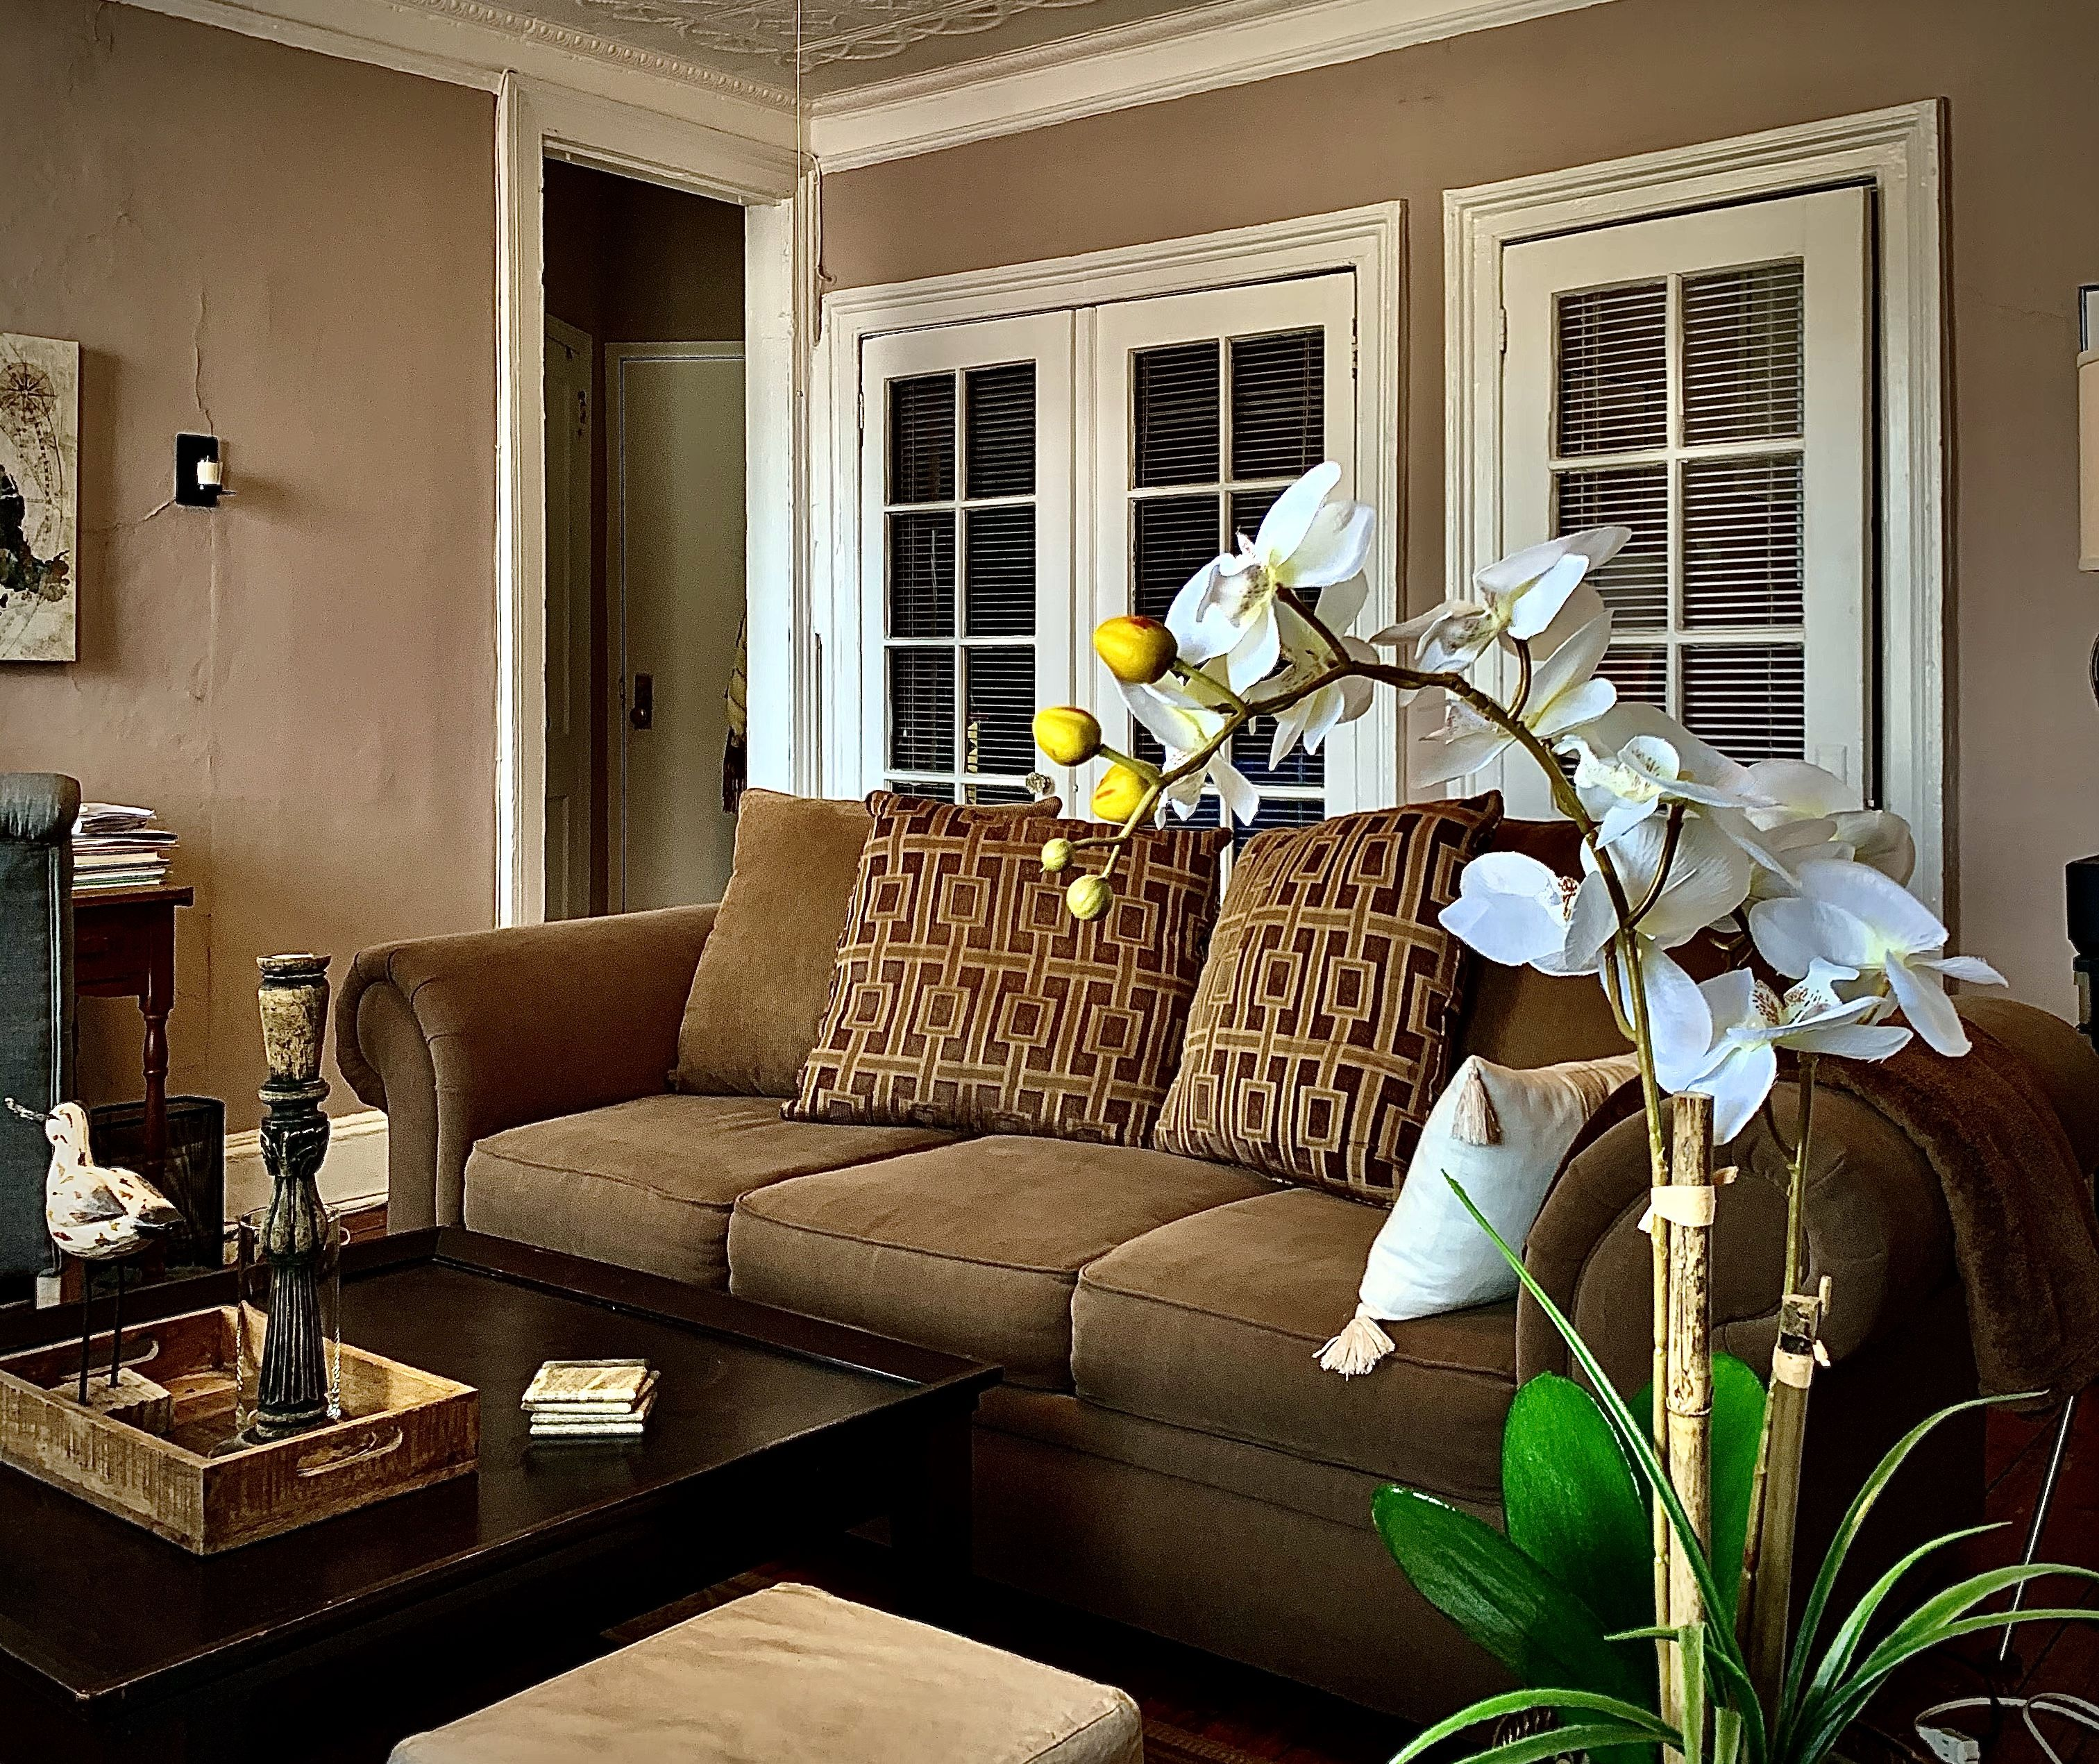 House Staging Rental Furniture: A. Interior Decor... Staging Of An Occupied Apartment